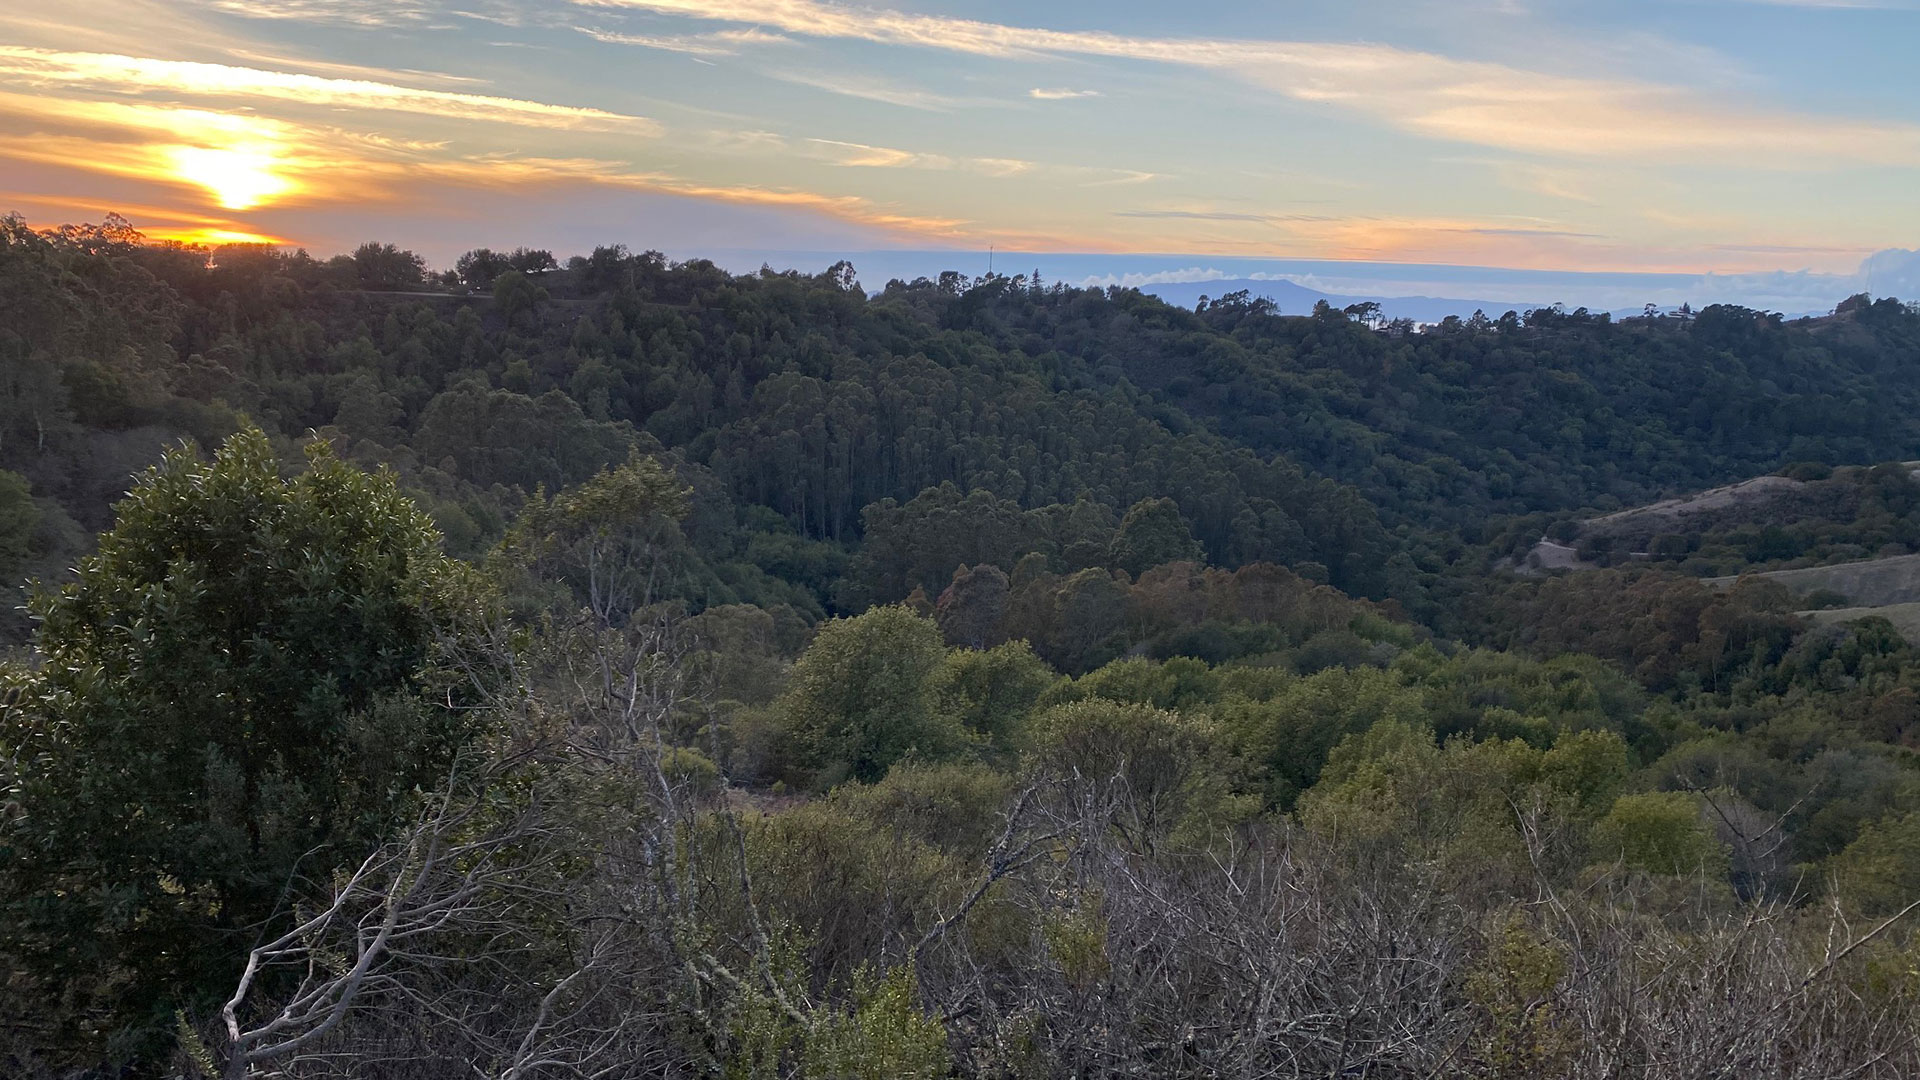 View of the sun setting over the bay from Sibley's hilltops.